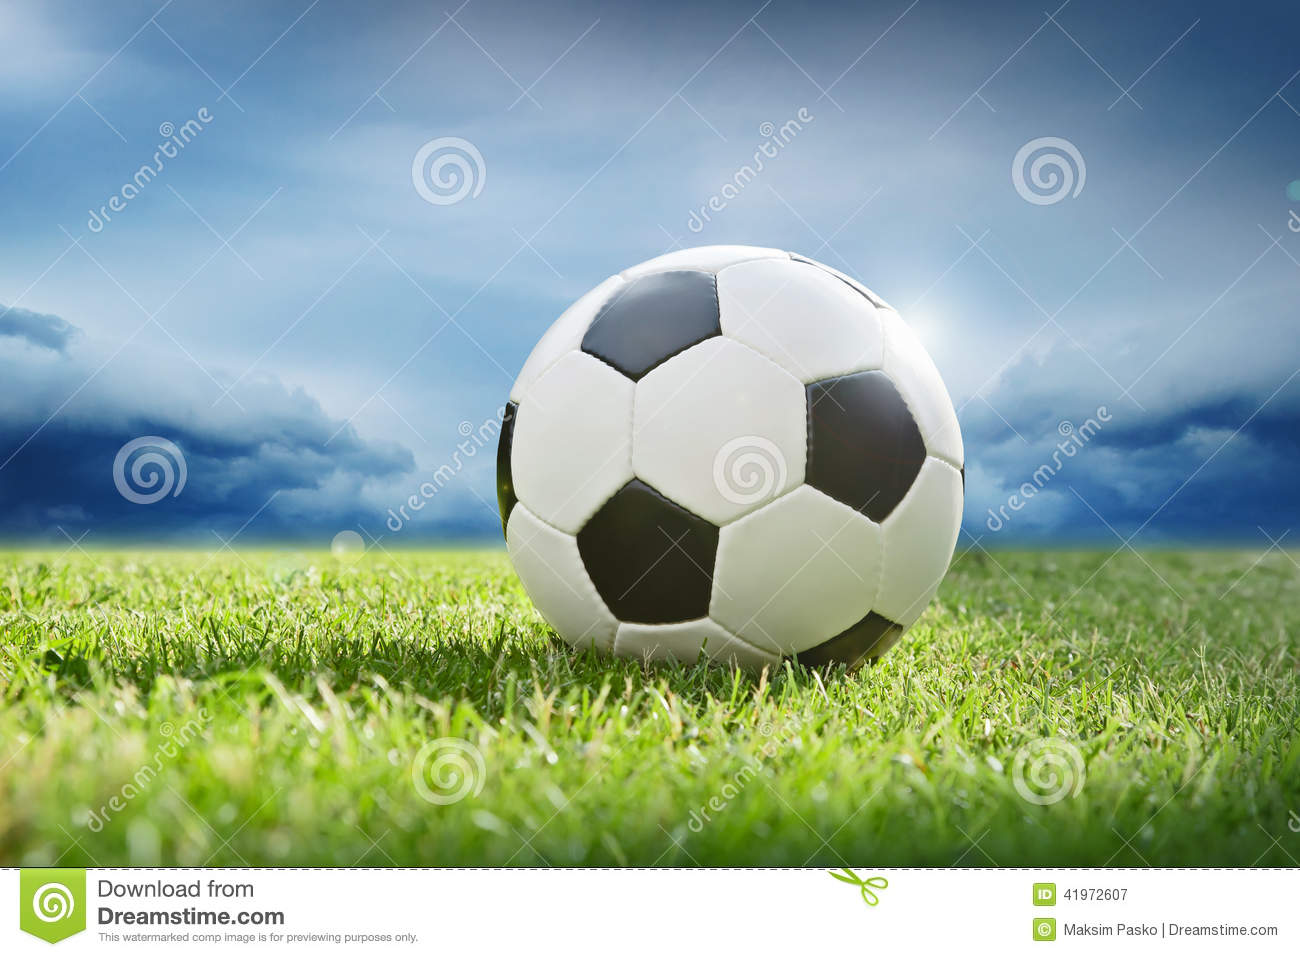 Soccer Football On Green Field With Blue Sky Background: Soccer Ball On Green Grass Stock Photo